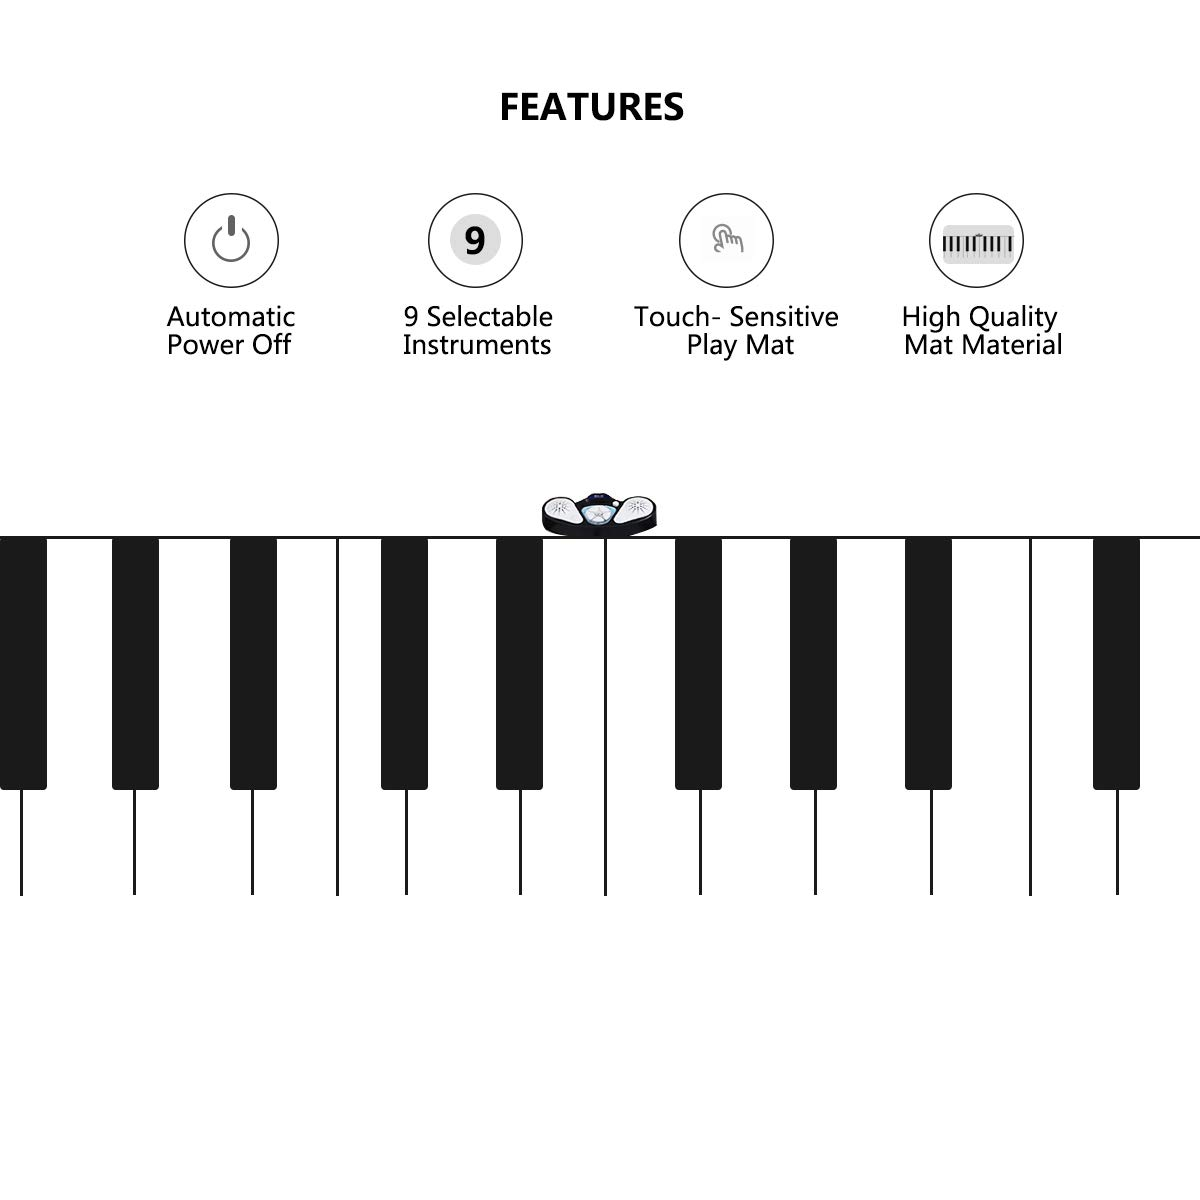 Costzon Giant Keyboard Playmat, 24 Keys Piano Play Mat, Foldable Activity Mat w/ 9 Selectable Musical Instruments, Play - Record - Playback - Demo - Tone Conversion Modes, Support MP3, Phone Play by Costzon (Image #2)